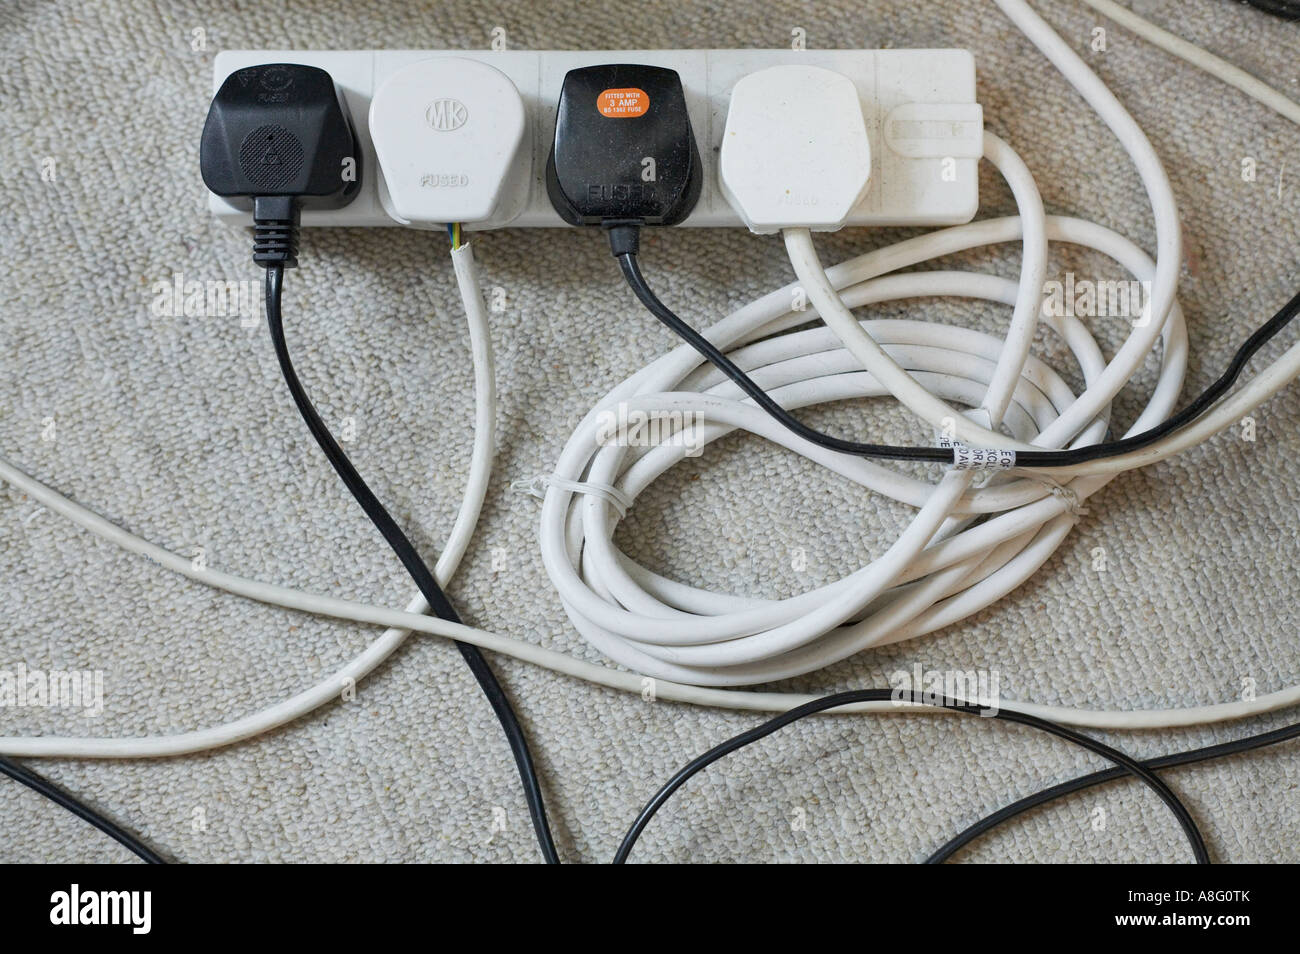 hight resolution of electrical plug wires extension leads cable unit mess tangle too many electricity electric mains peripherals